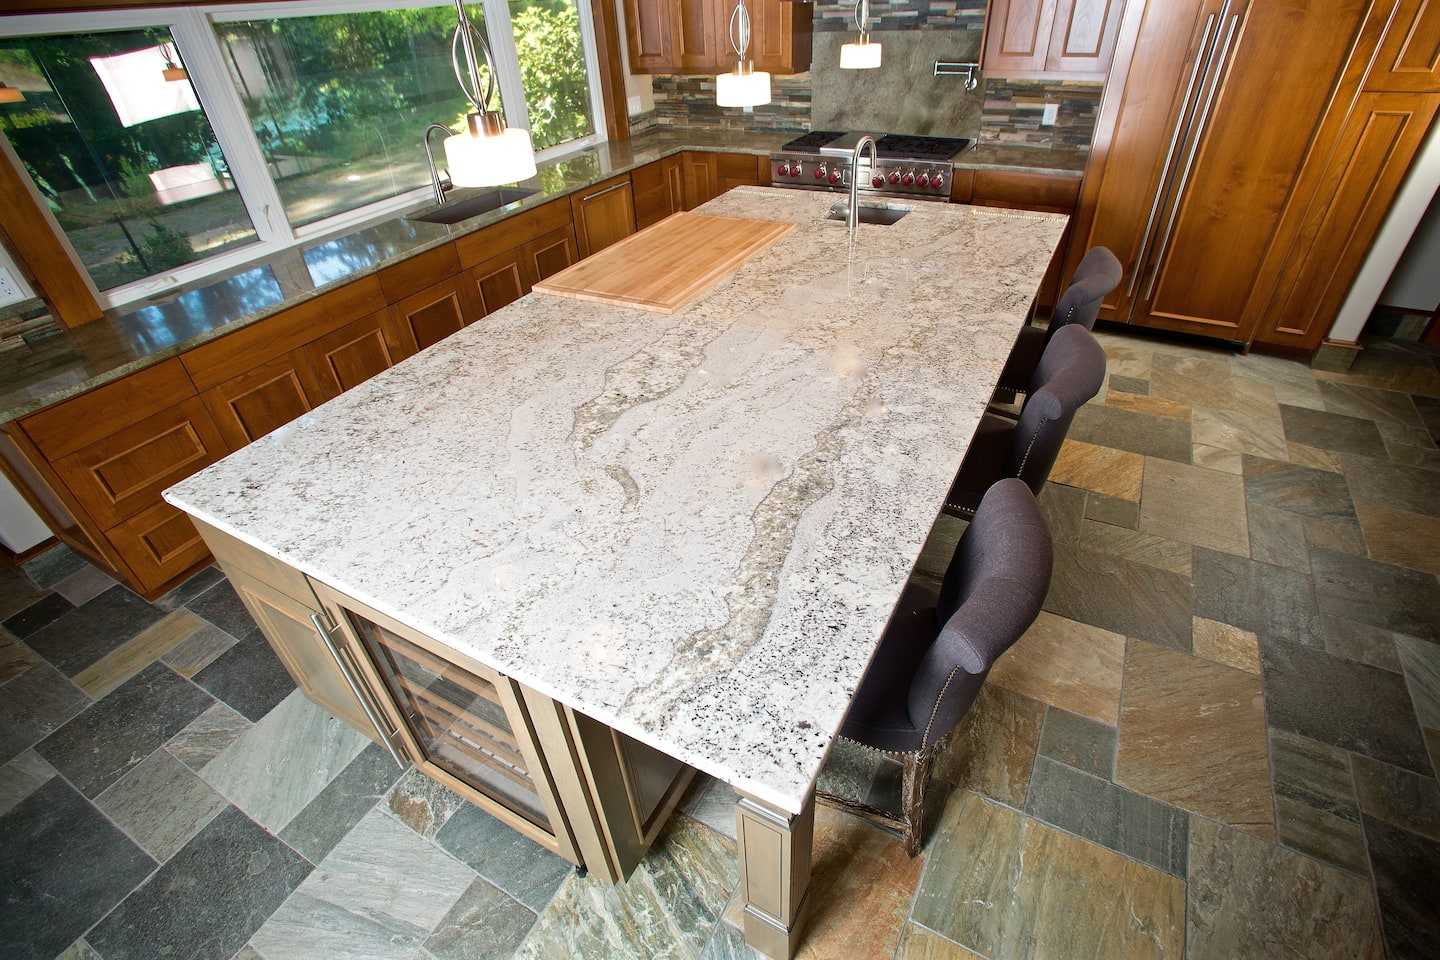 Granite kitchen countertop designs and styles angie 39 s list for Granite countertop width